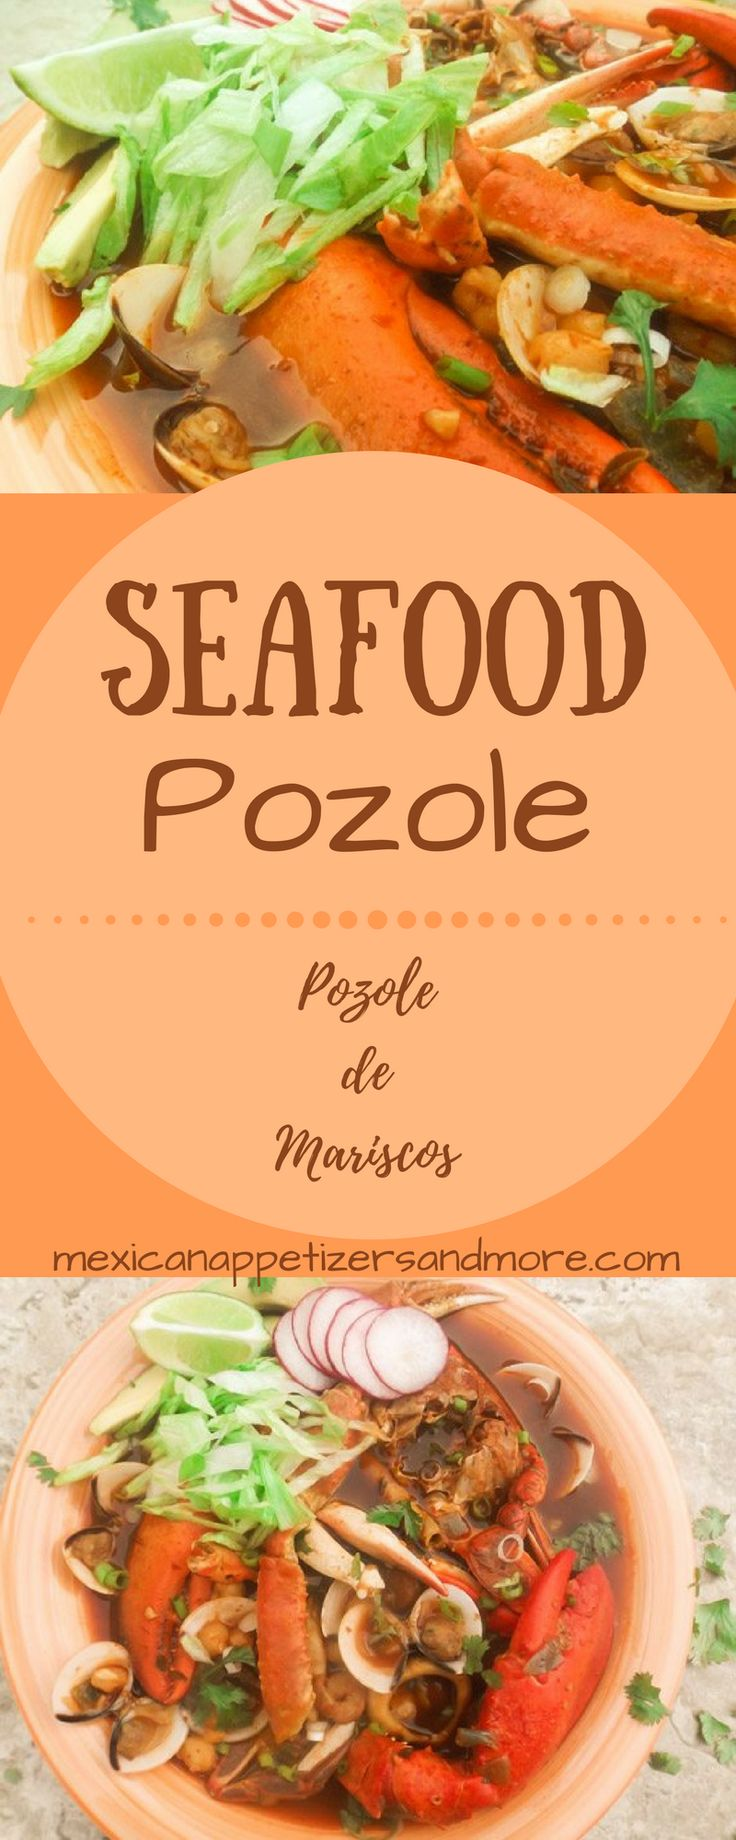 If you love seafood as much as I do then this Pozole de Mariscos recipe is for you! Broth has clams, calamari, scallops, shrimp, snow crab, blue crab, lobster, white hominy and seasoned with Mexican chilis, garlic and spices. Excellent soup! #pozole #pozoledemariscos #seafoodposole #seafoodpozole #seafood #soups | mexicanappetizersandmore.com